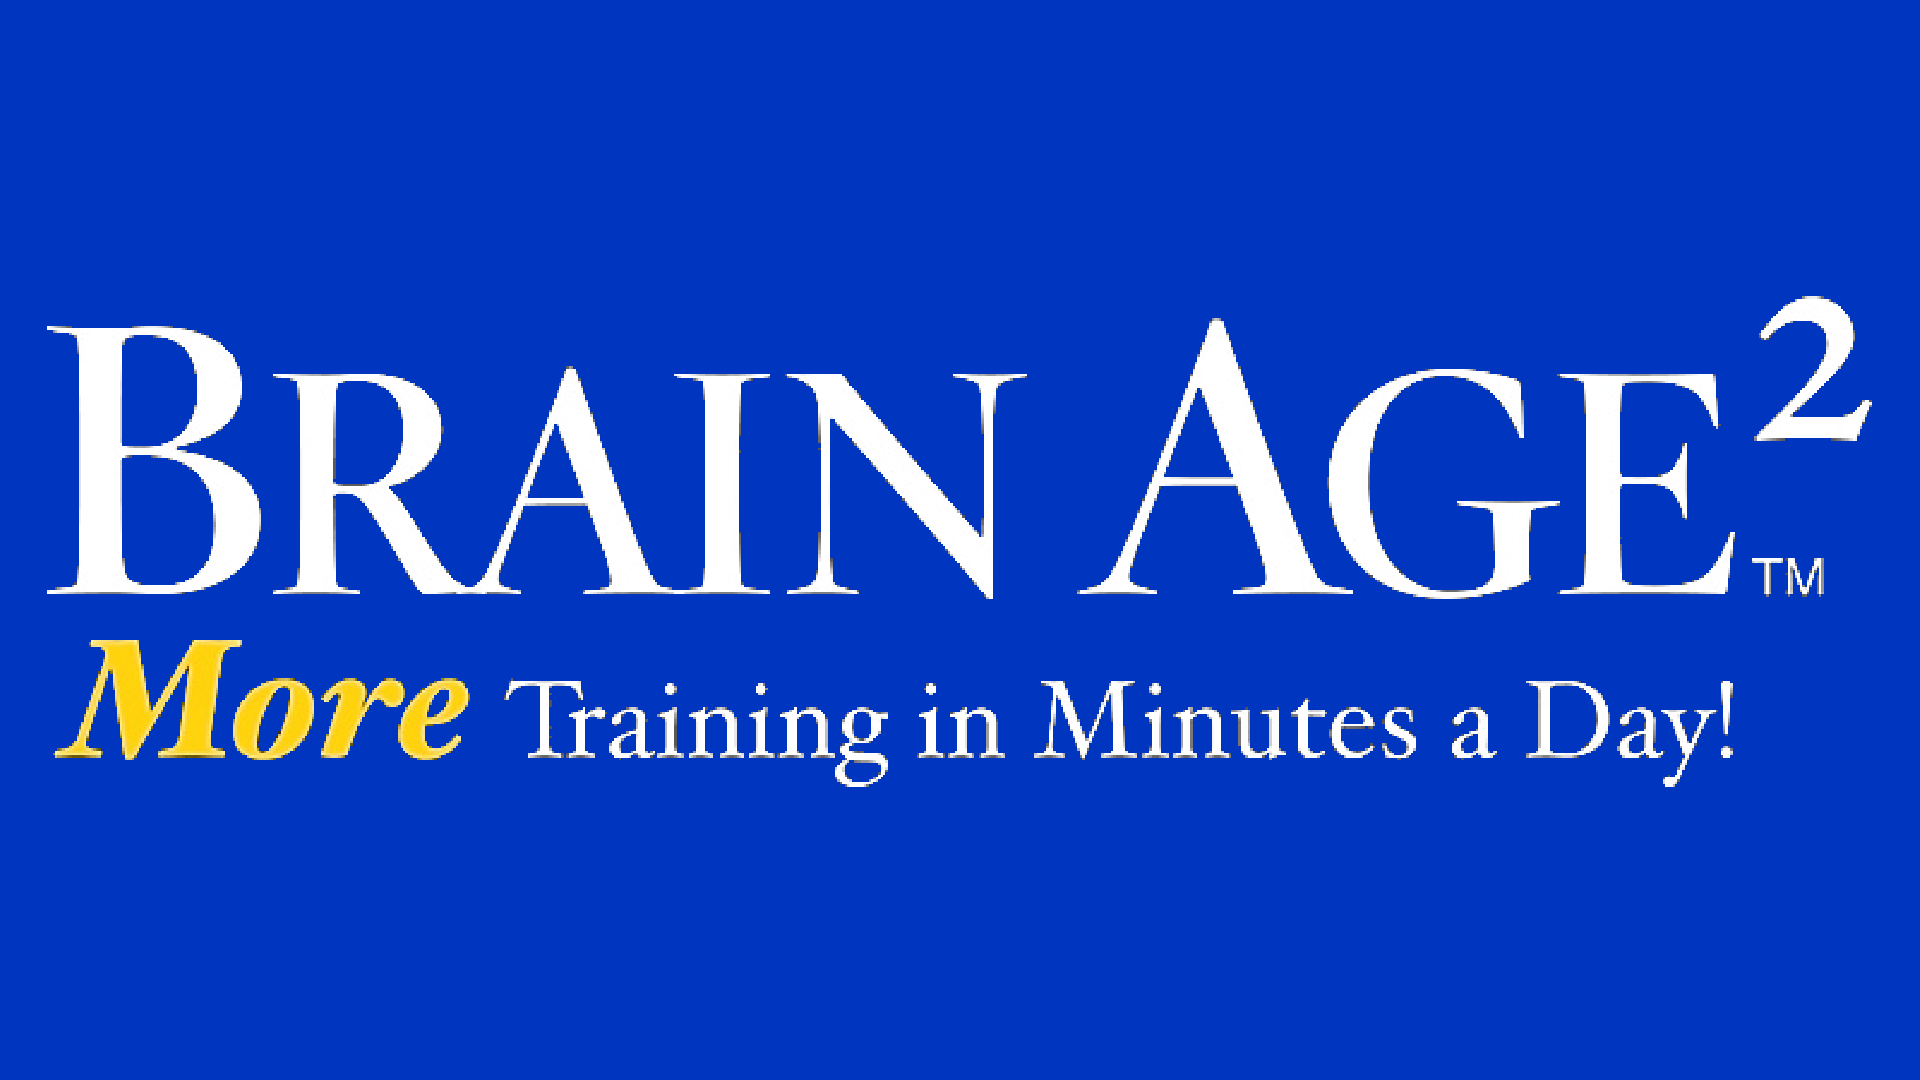 Brain Age 2: More Training in Minutes a Day! Logo